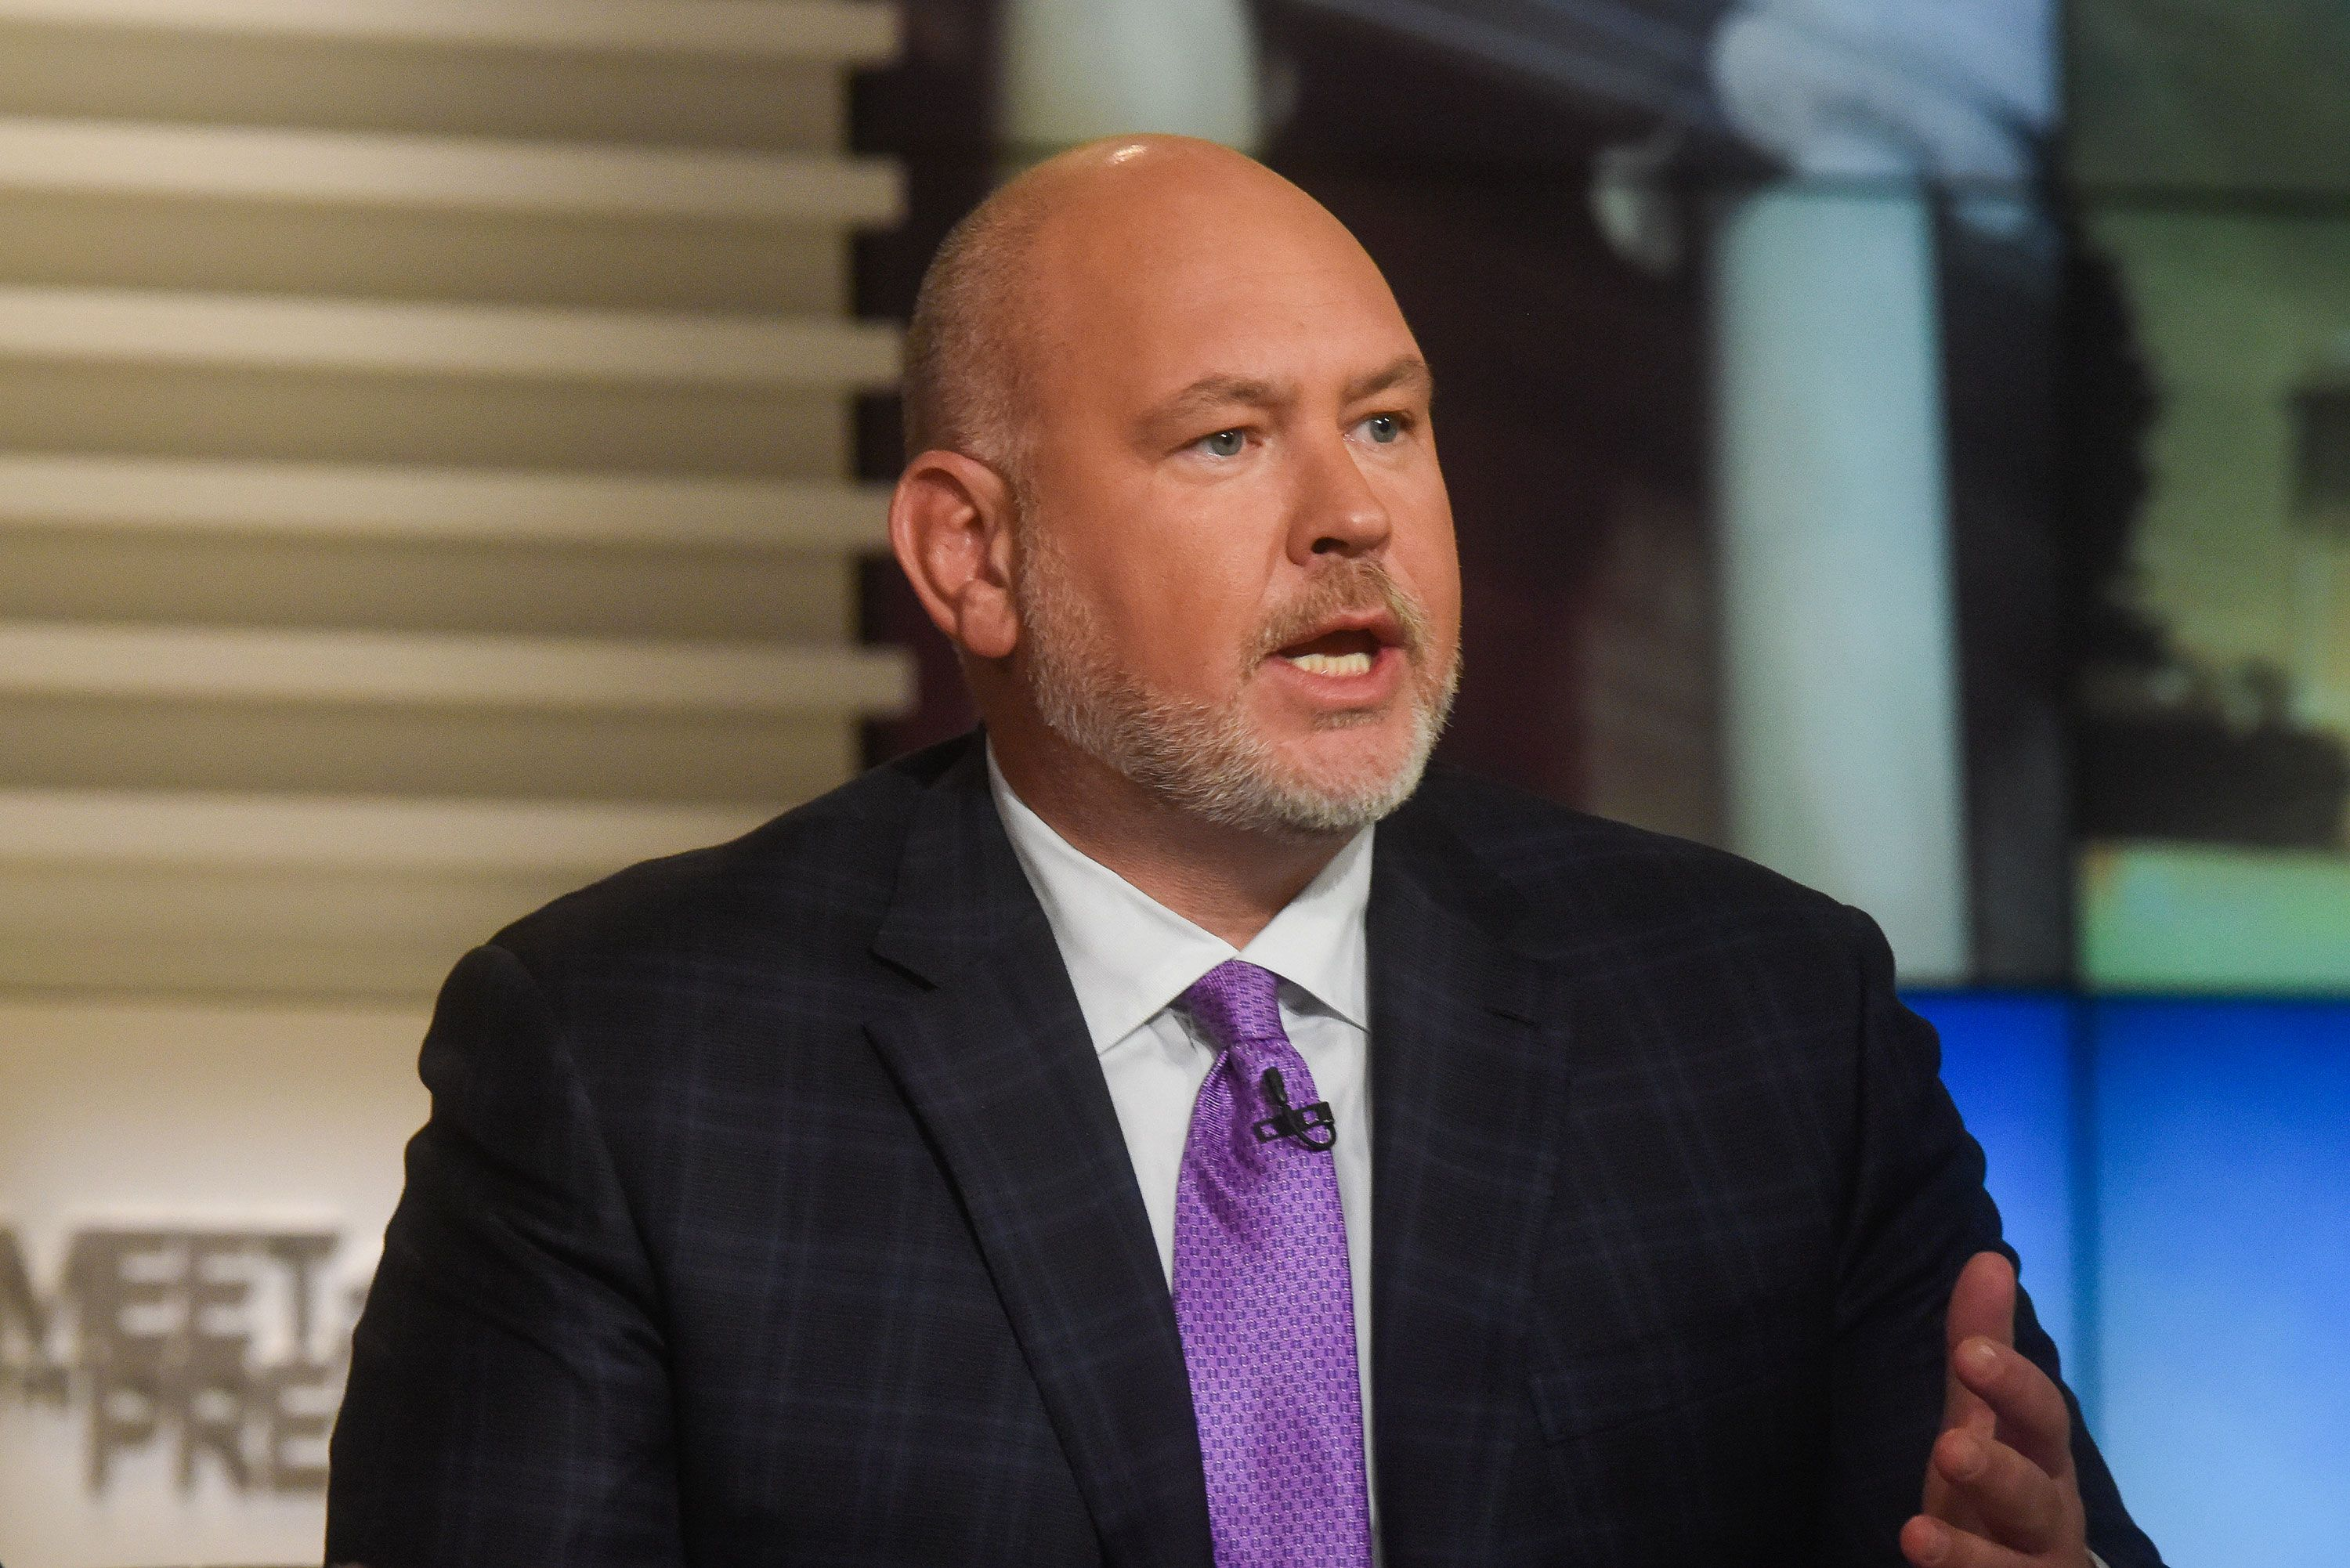 'The Force of Trump's Lying Has Ruptured the Space-Time Continuum': Steve Schmidt on Impeachment